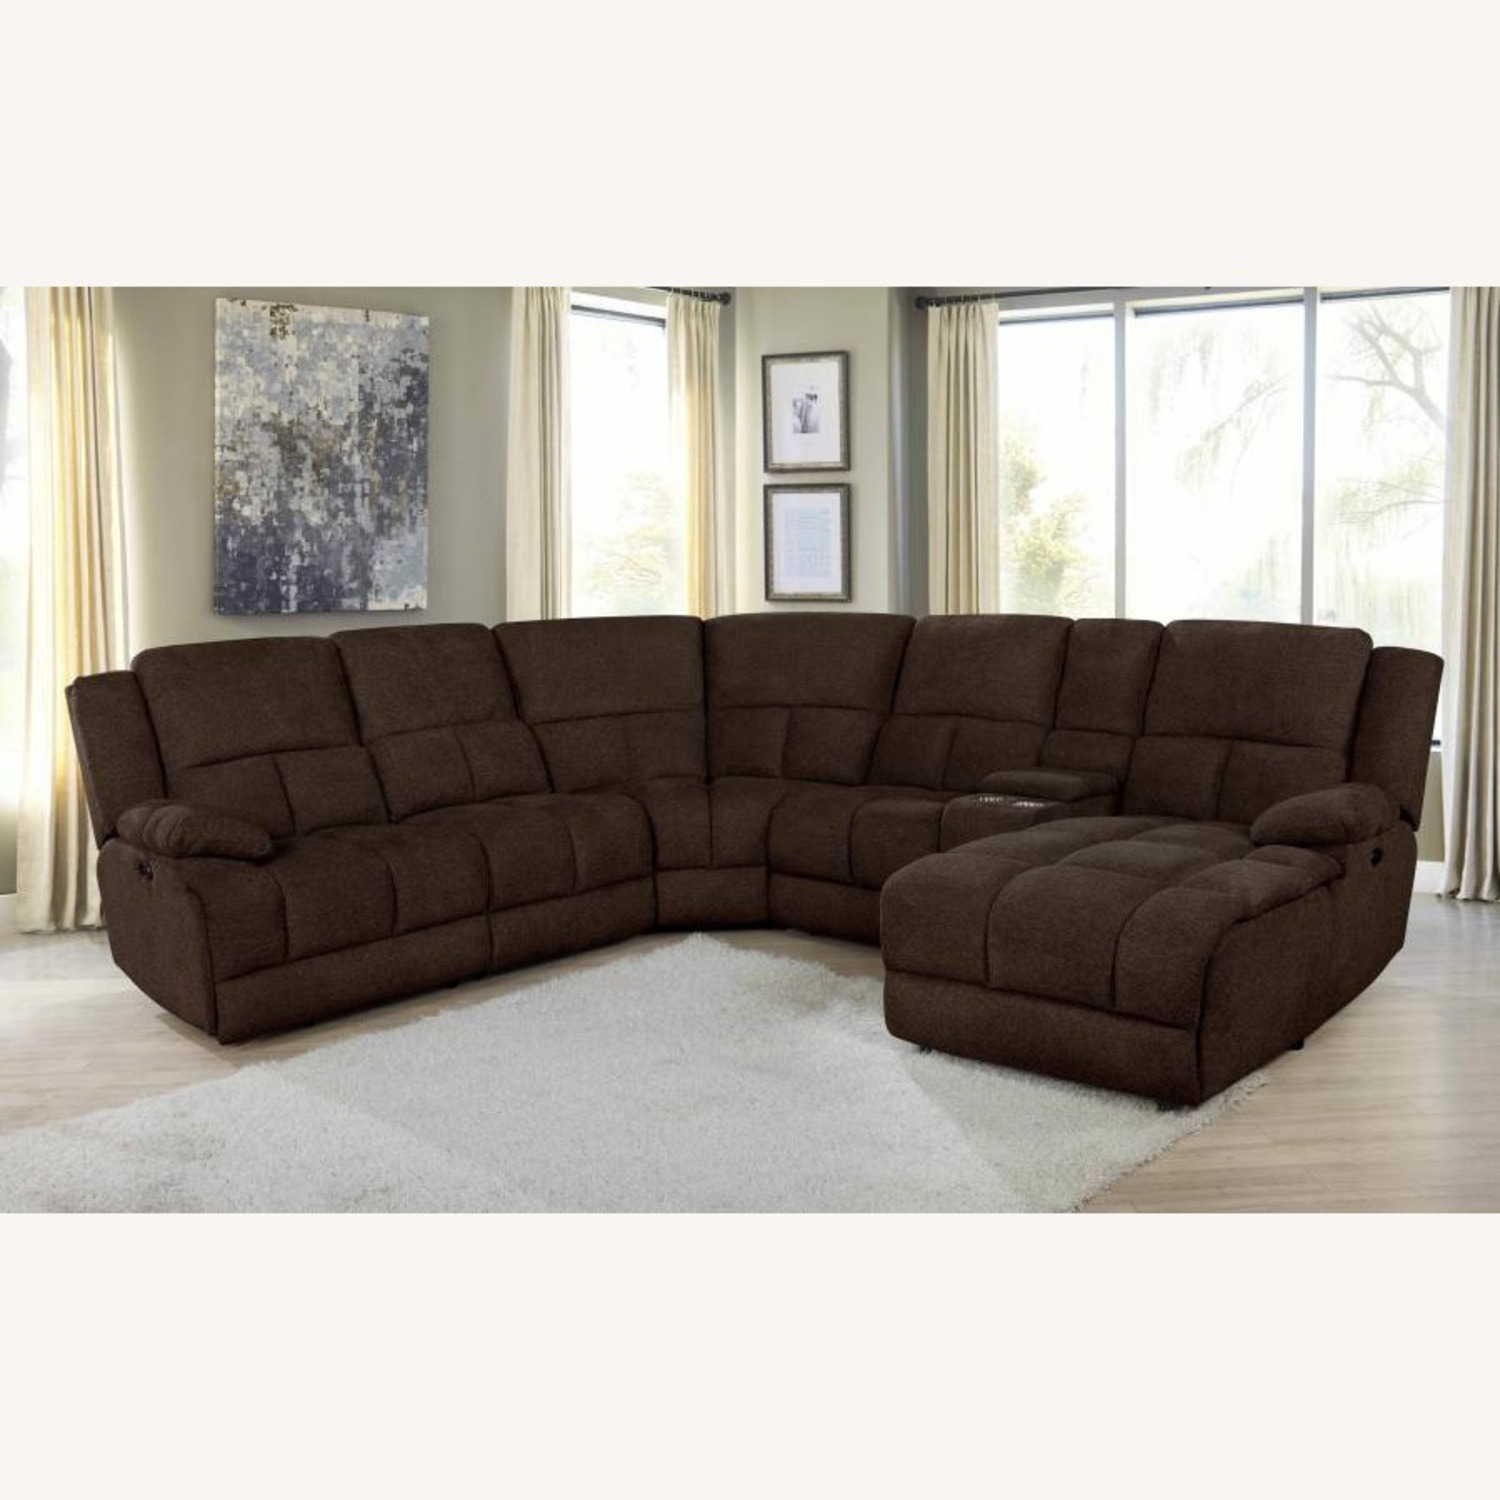 6Piece Power Sectional In Brown Performance Fabric - image-0